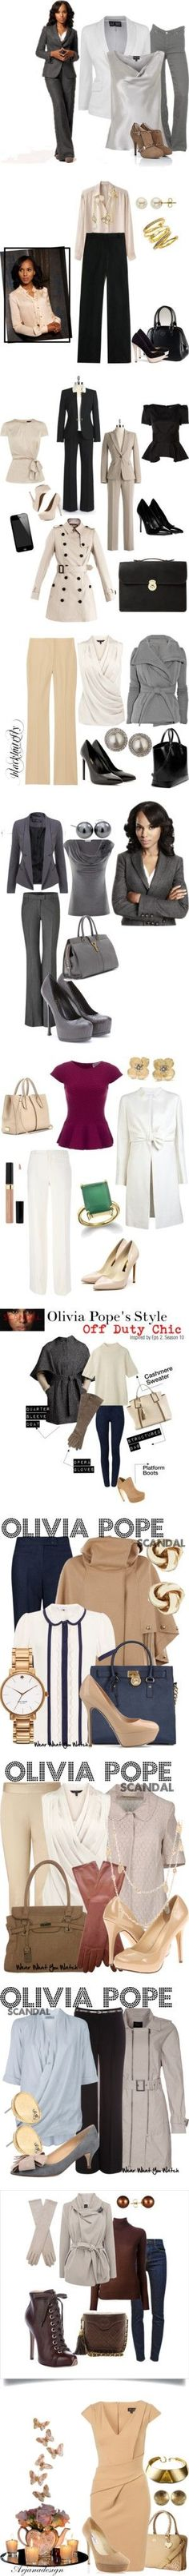 I love everything about the wardrobe of Kerri Washington's character Olivia Pope, from scandal by frick